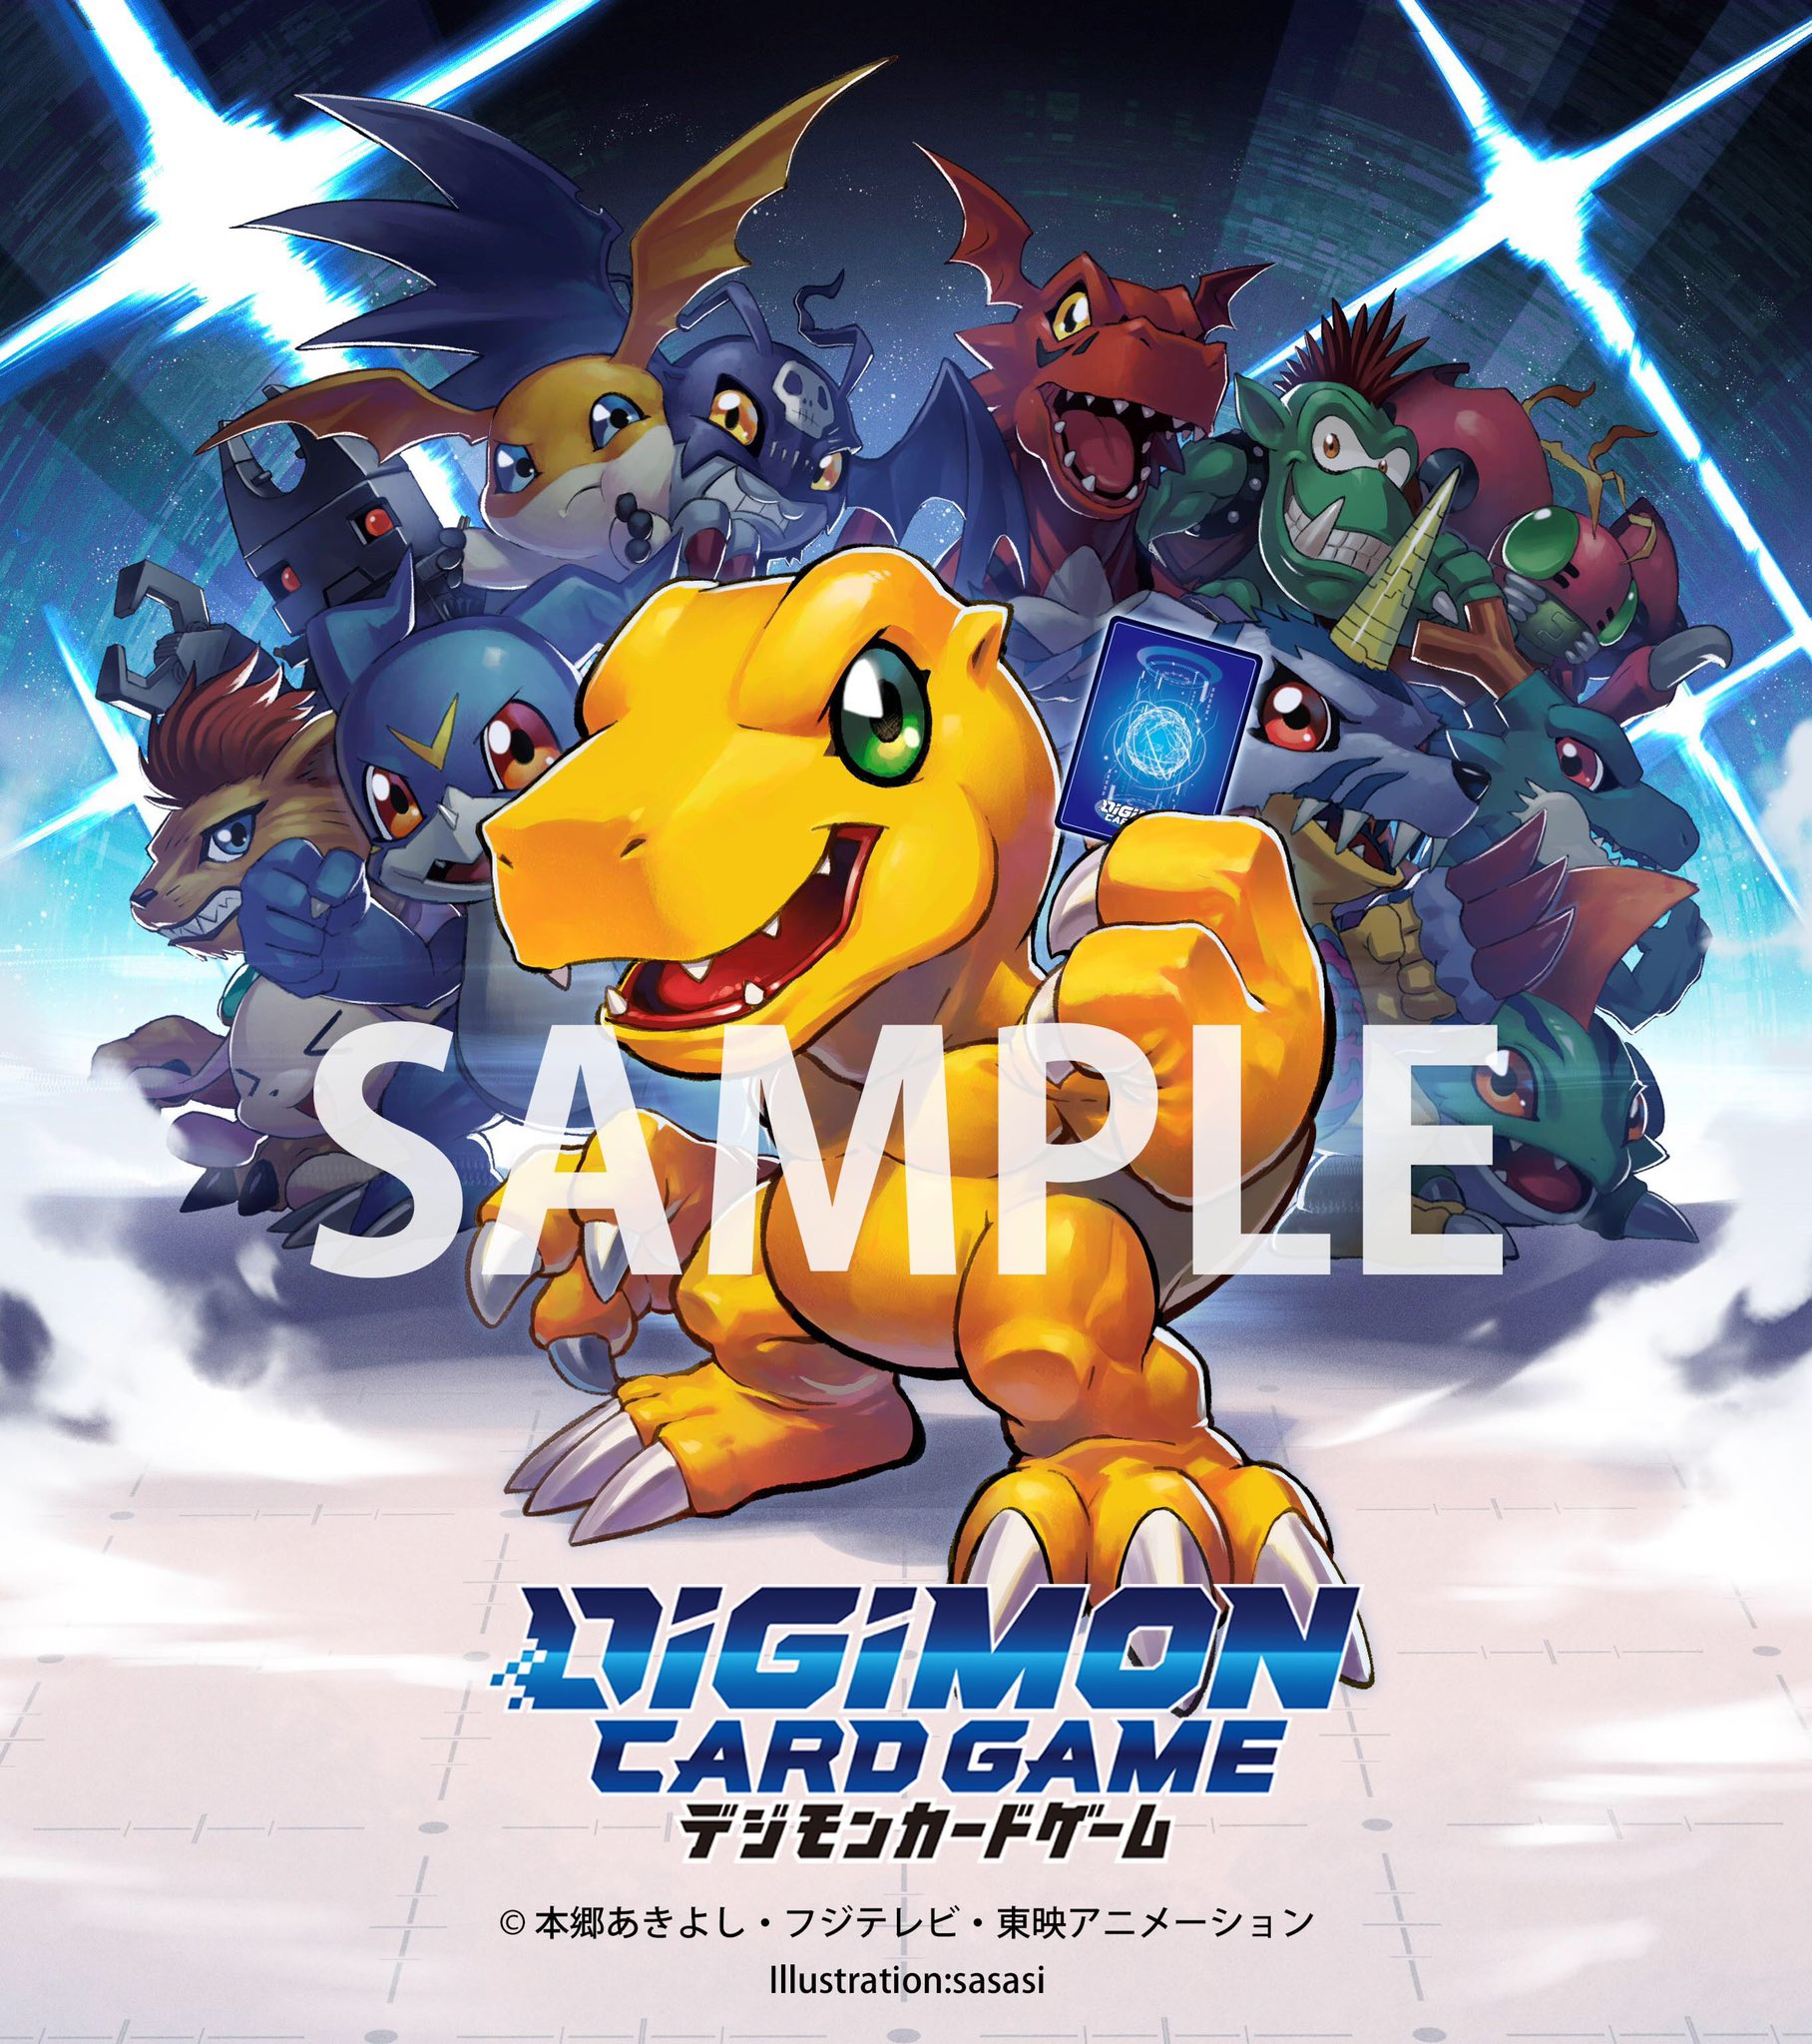 Photo of Digimon Card Game 0.0